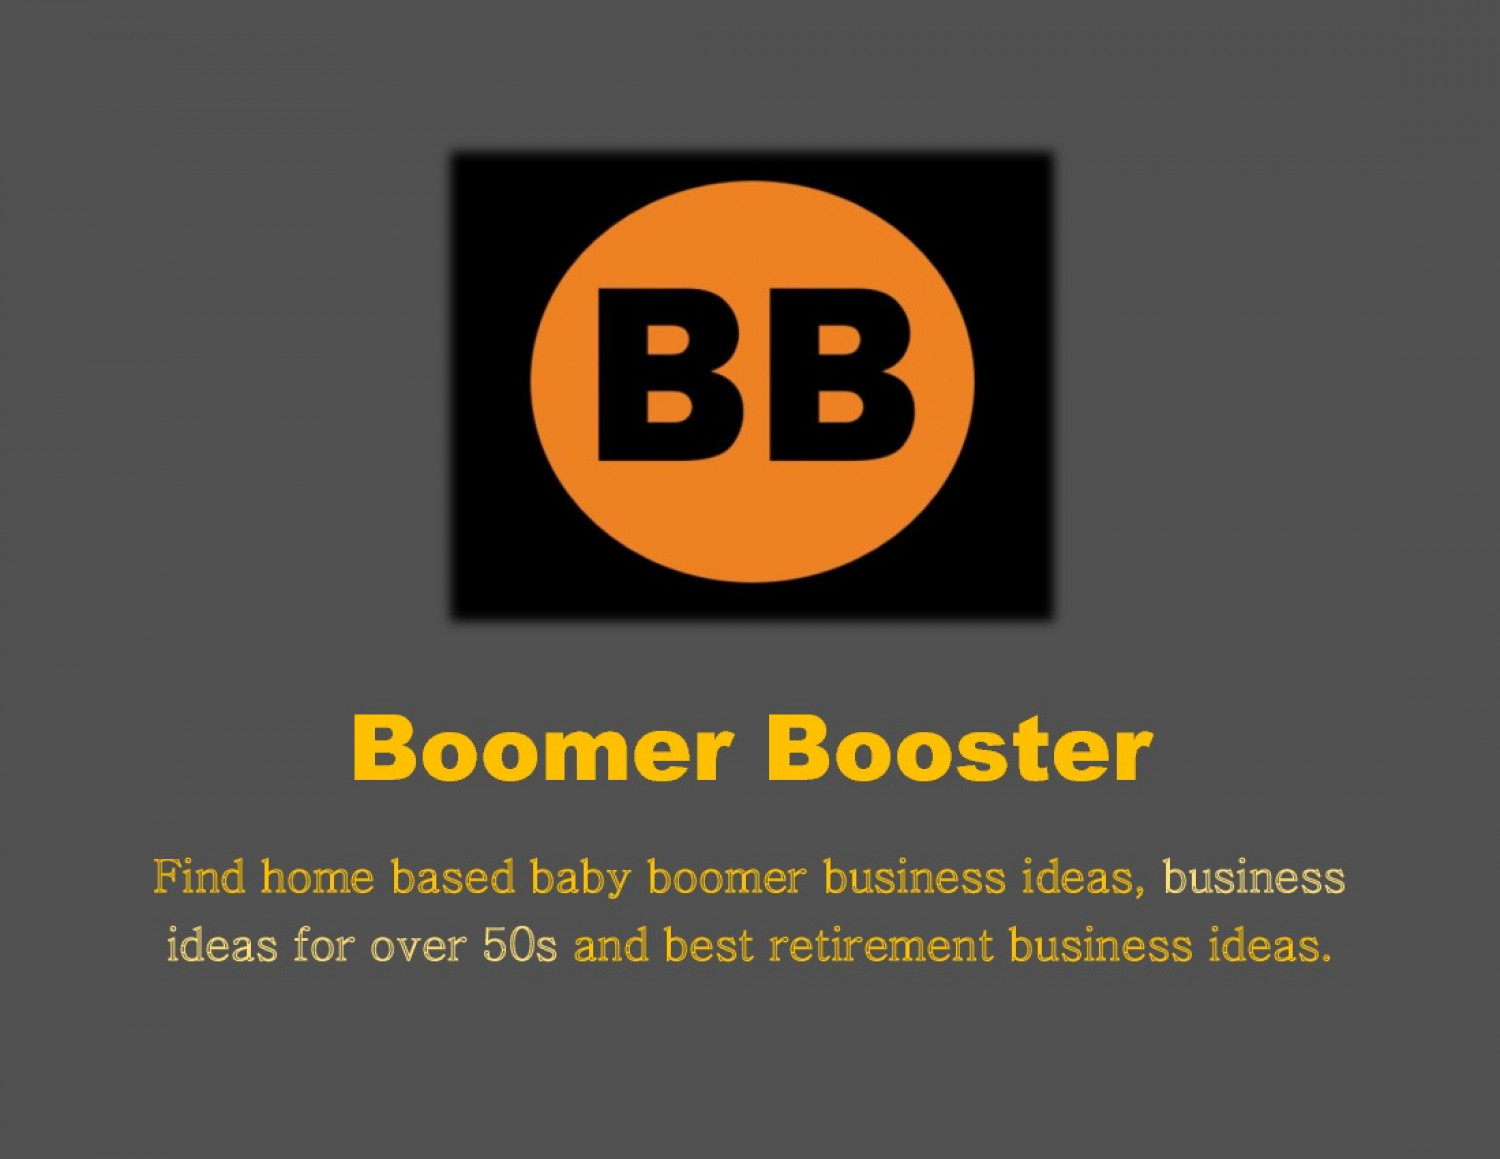 Boomer Booster - Baby Boomer Business Ideas Infographic